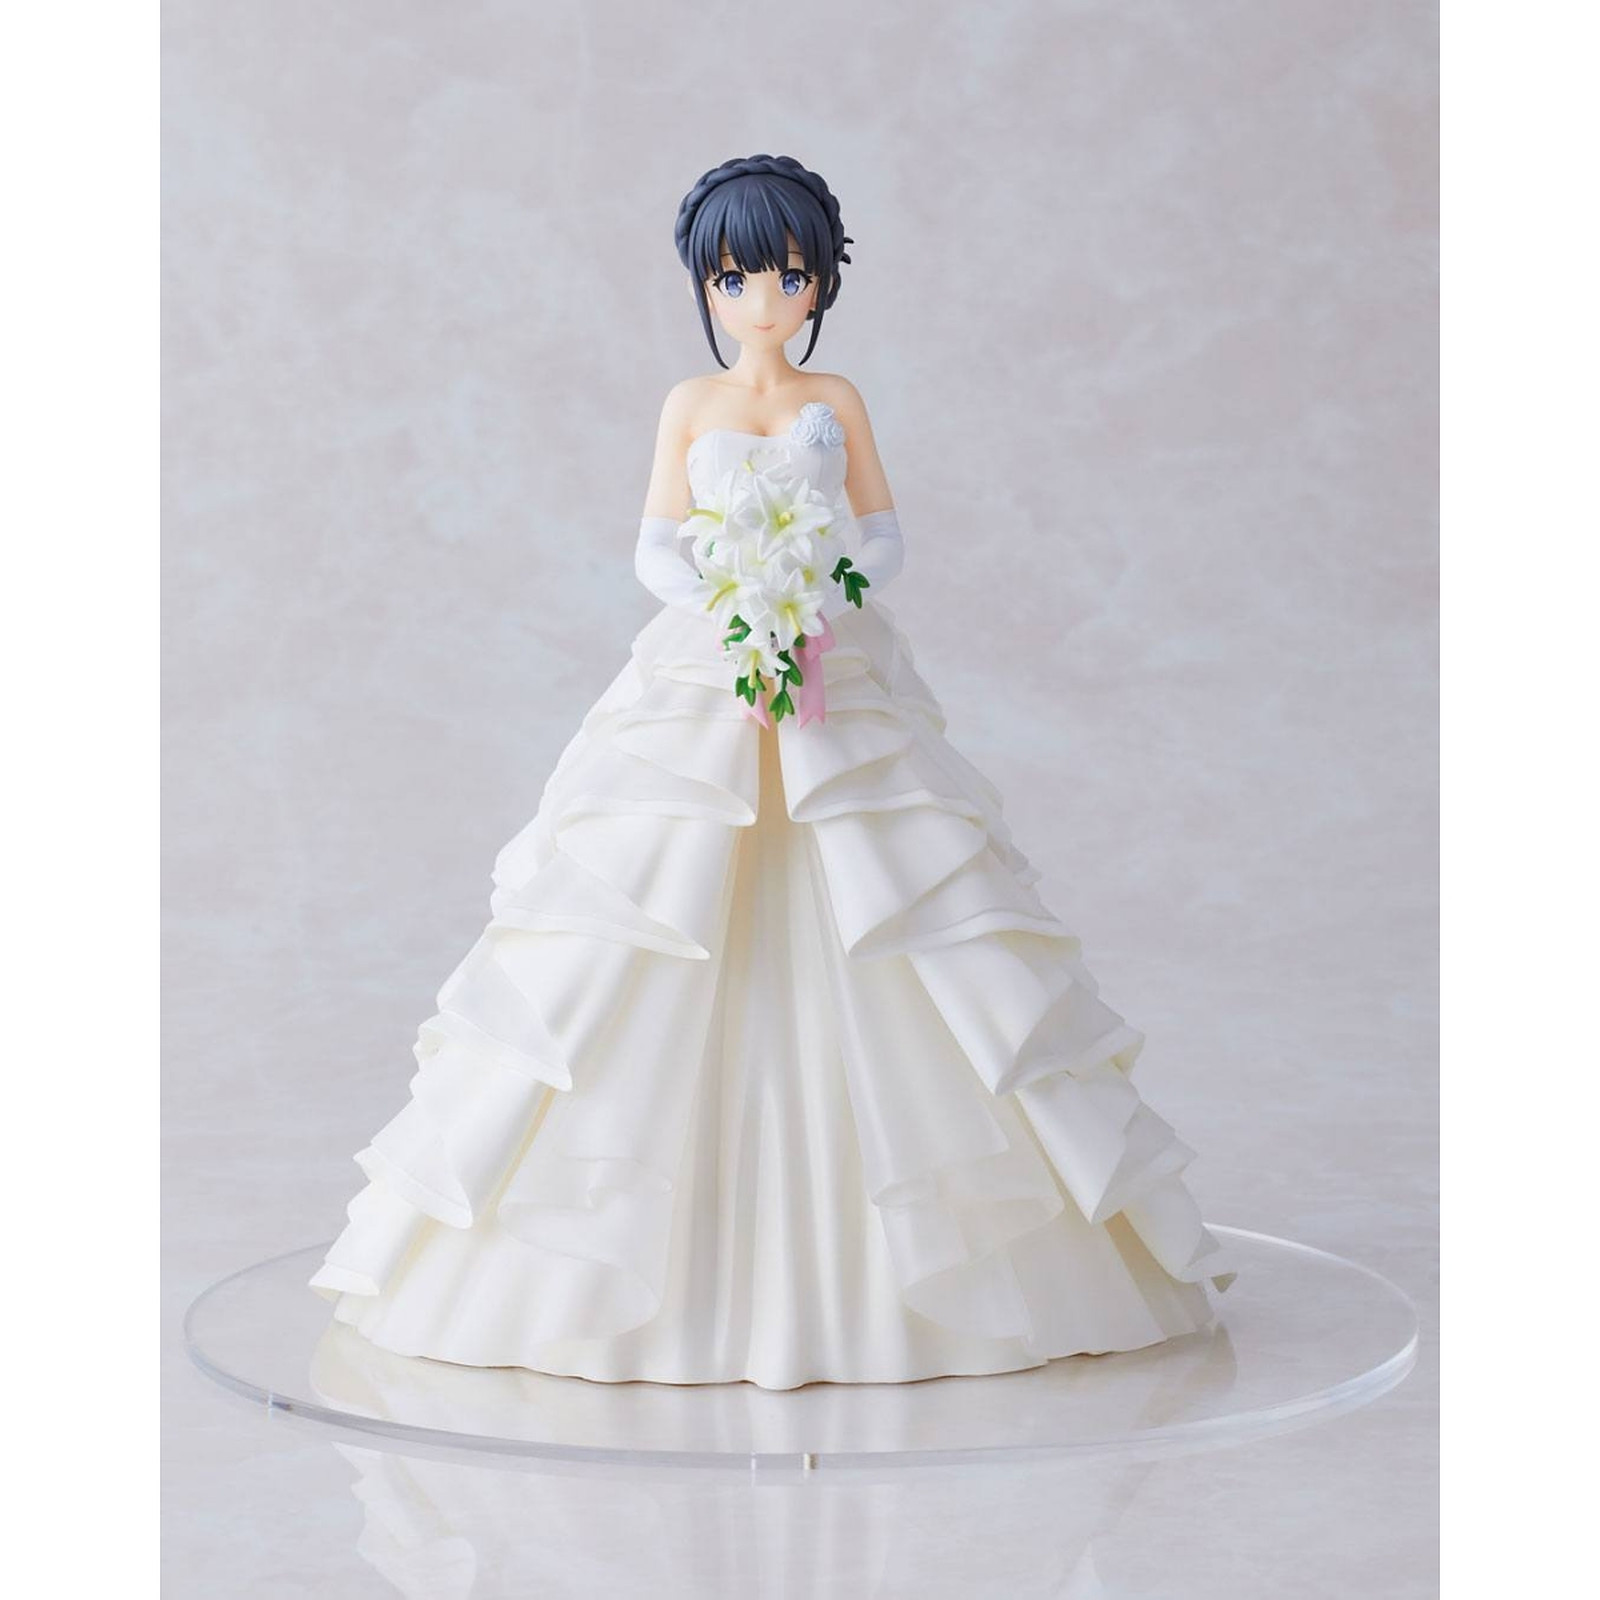 Rascal Does Not Dream of Bunny Girl Senpai - Statuette 1/7 Shoko Mahinohara Wedding Ver. 22 cm